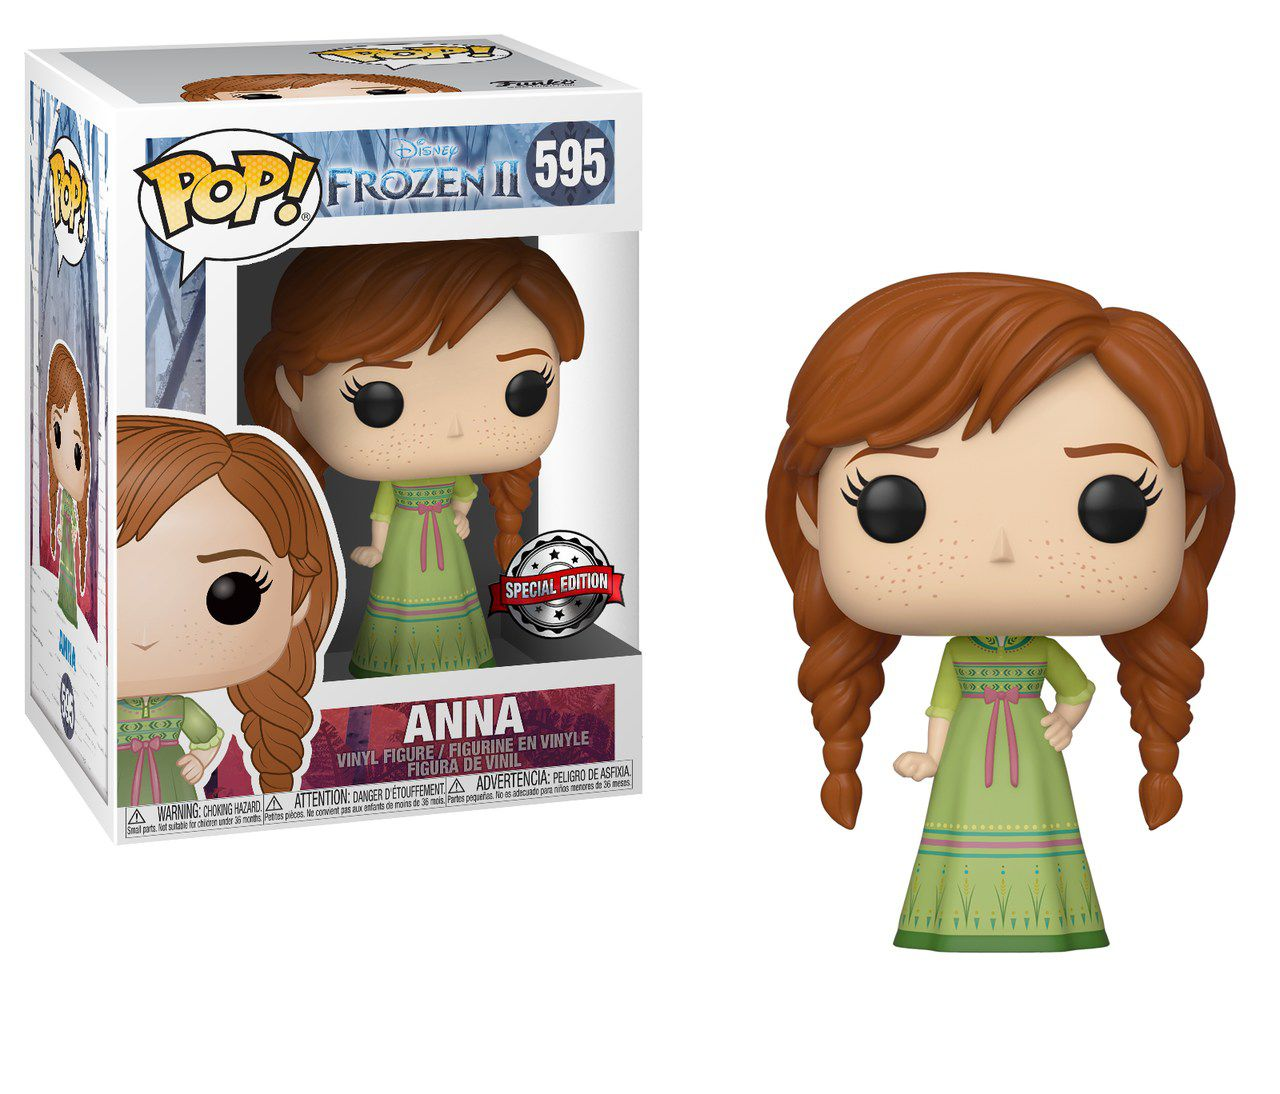 Funko Pop! Anna: Frozen 2 (Exclusivo) #595 - Funko